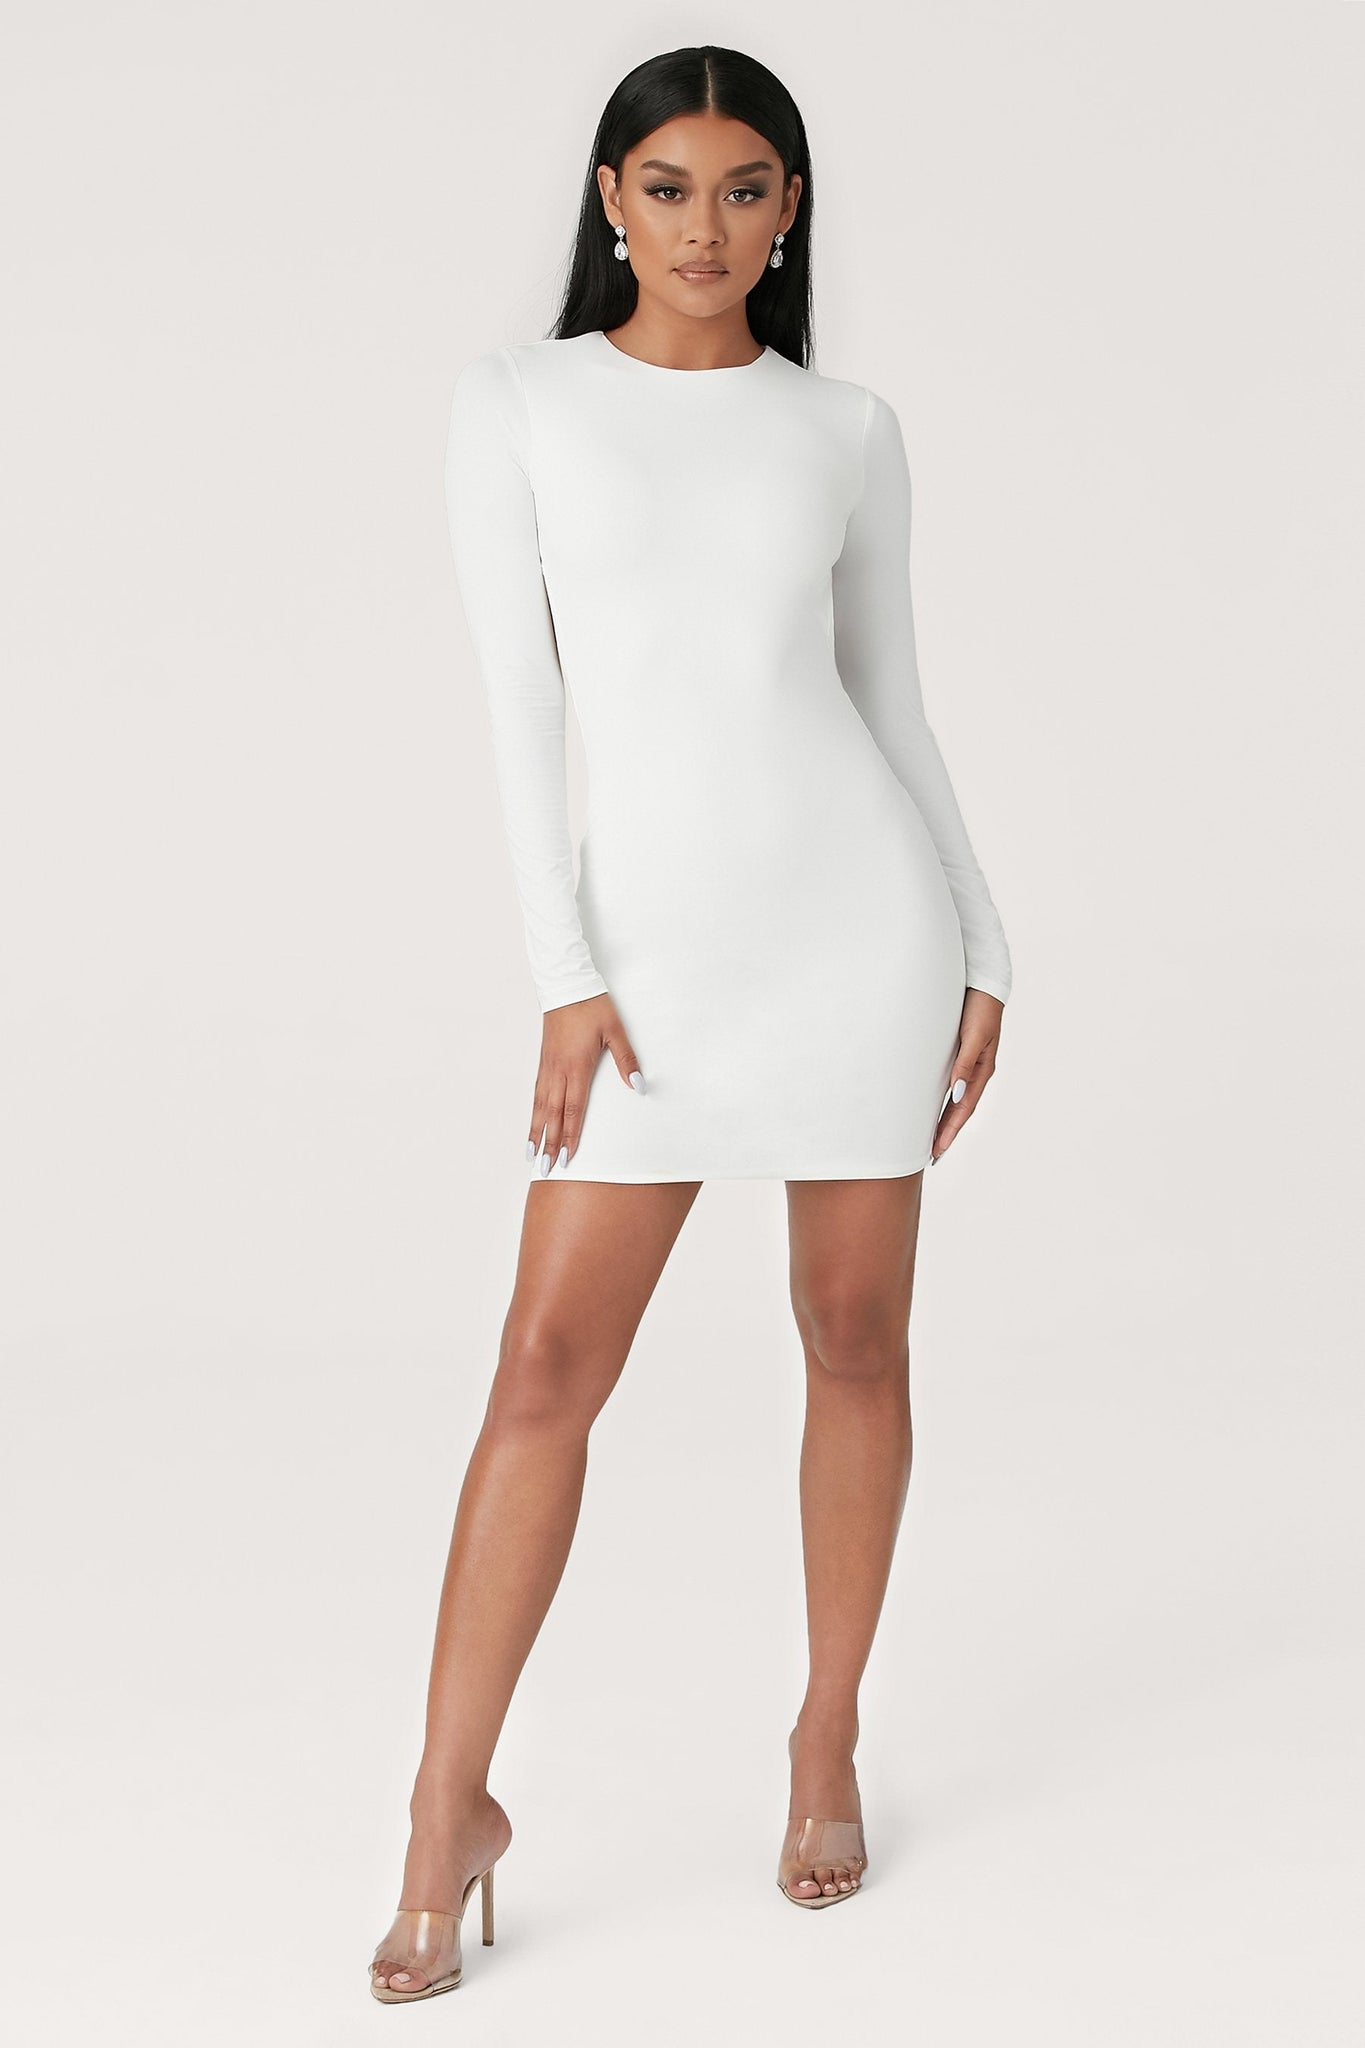 Rayne Long Sleeve Mini Dress - White - MESHKI